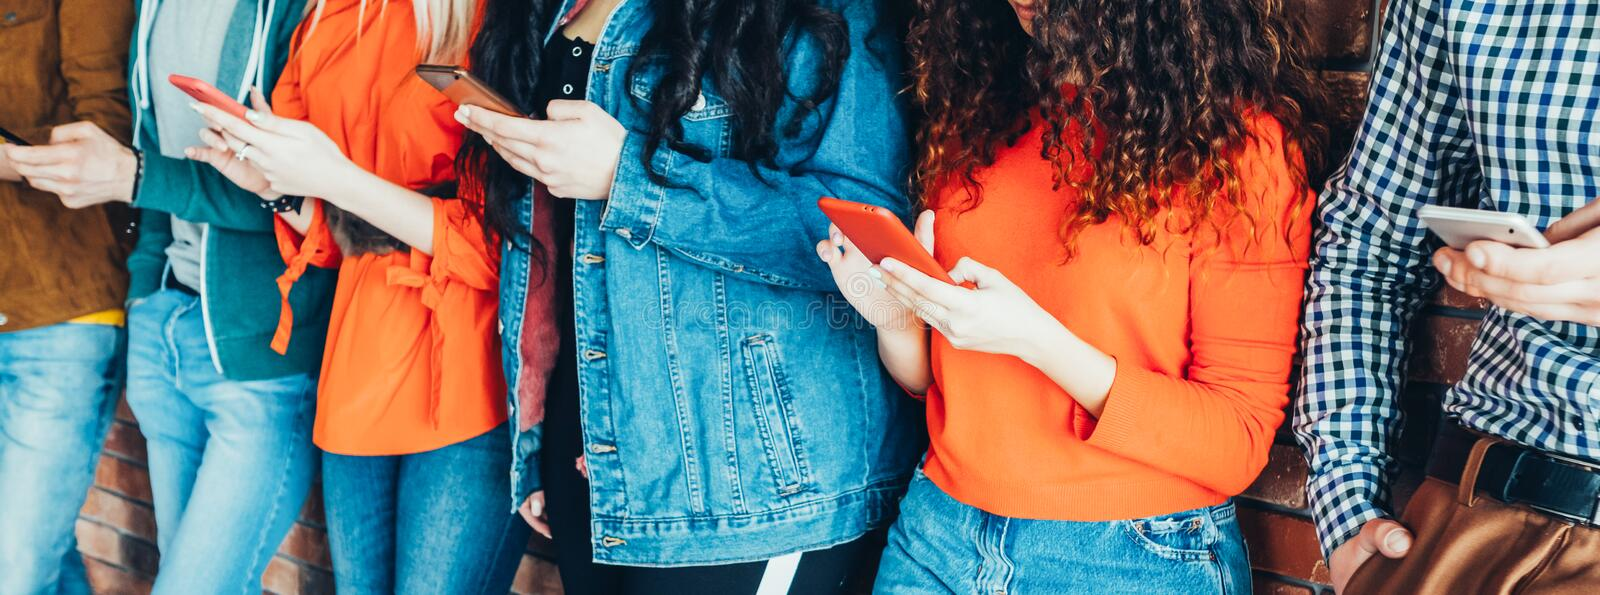 Millennials style casual denim outfit smartphones. Millennials style. Young people in trendy denim outfits standing with smartphones, reading messages, posts in royalty free stock photos